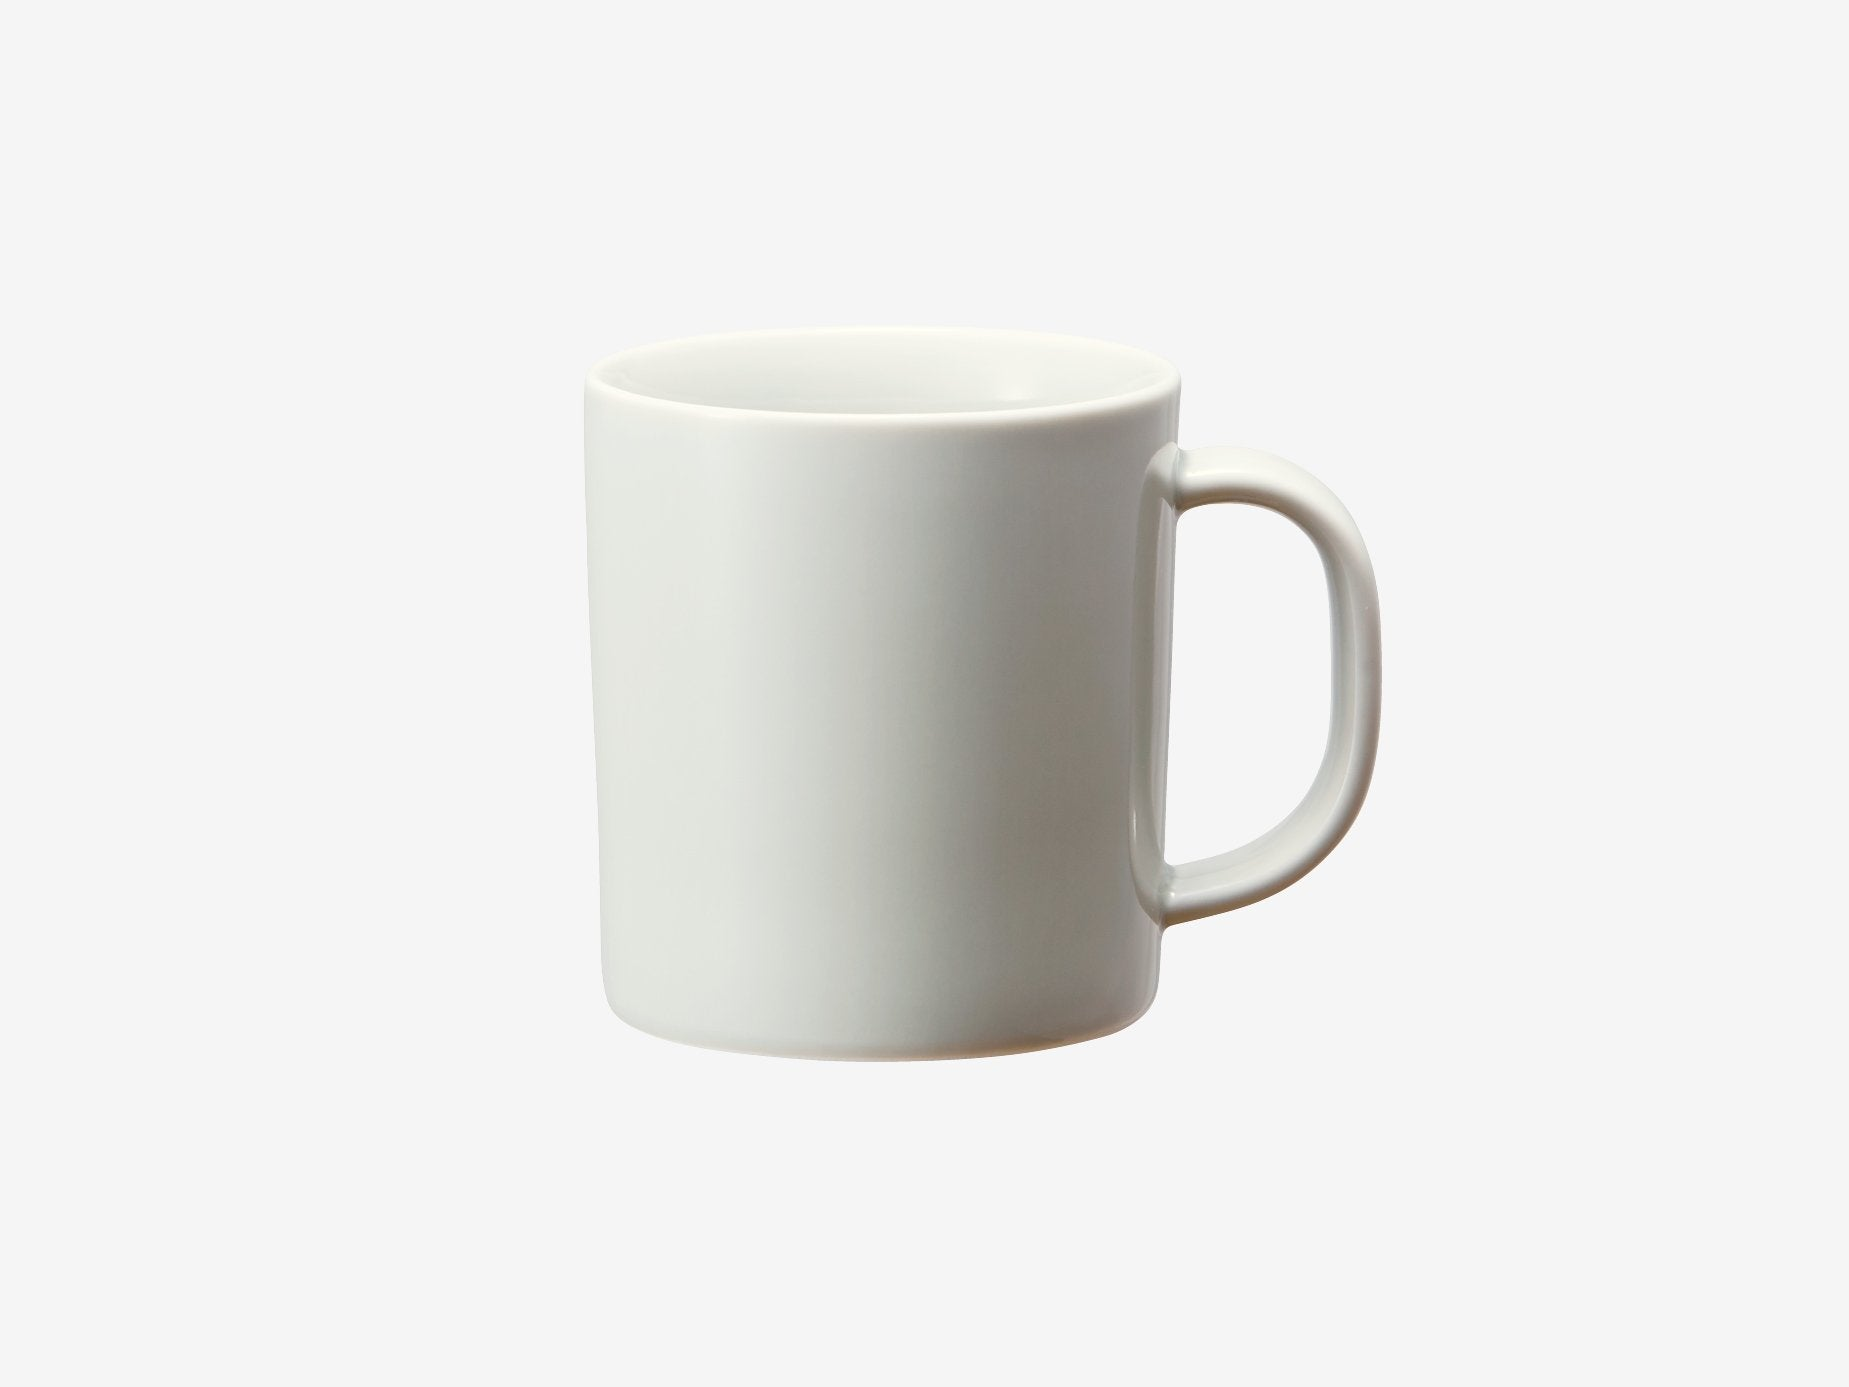 "Common, Common Mug Cup, 10 oz -  3 ø x 4 ¼ x 3 ½"" / White- Placewares"